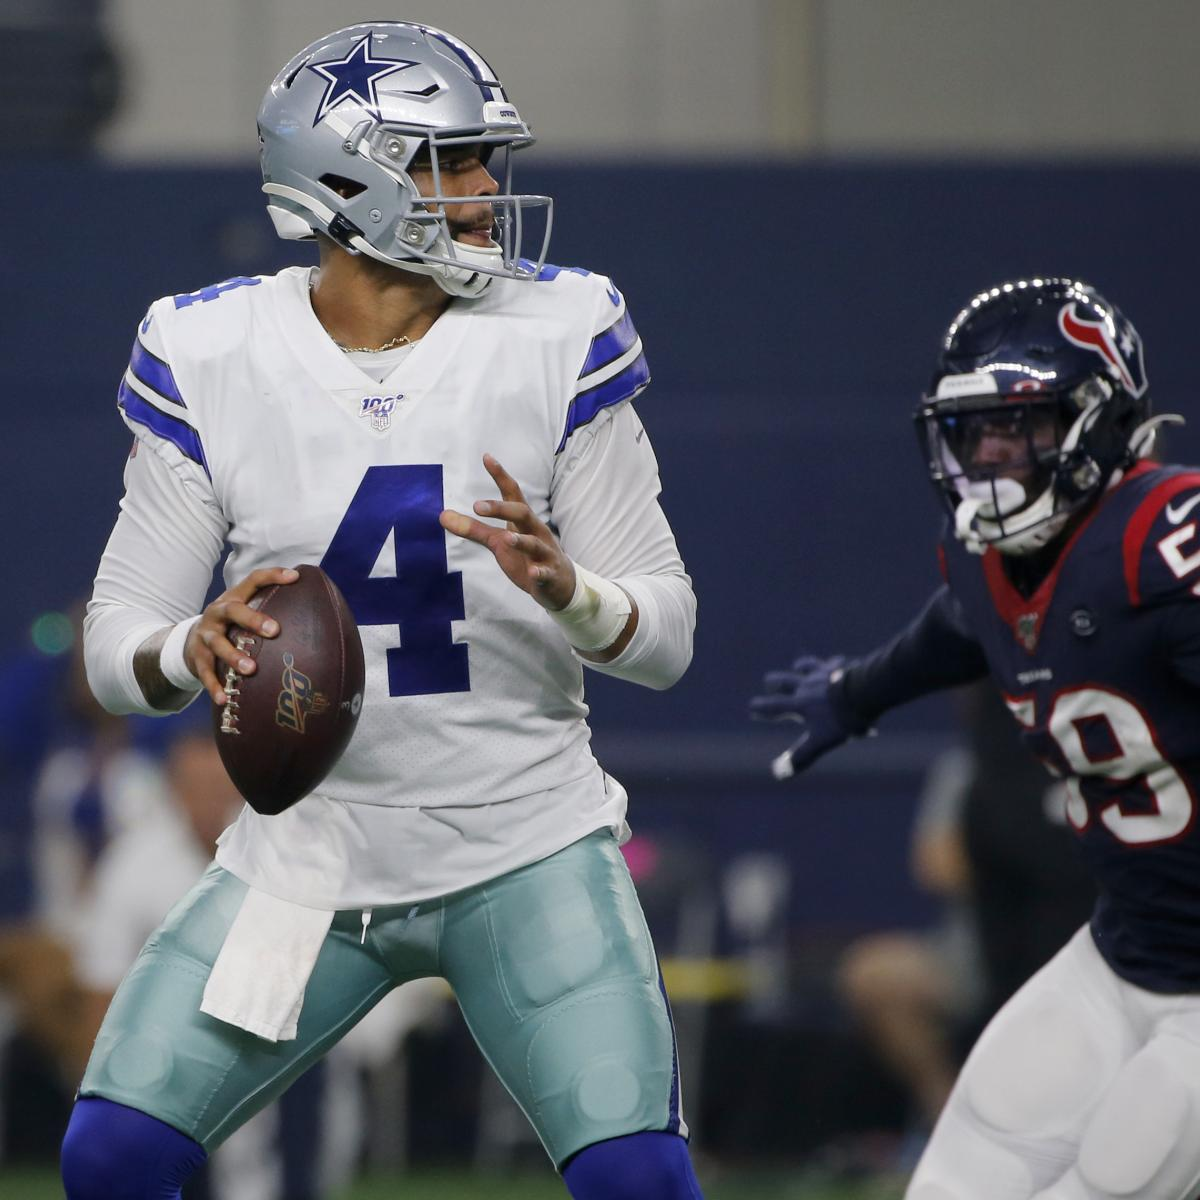 Dak Prescott, Cowboys Beat Texans In Preseason; Lamar